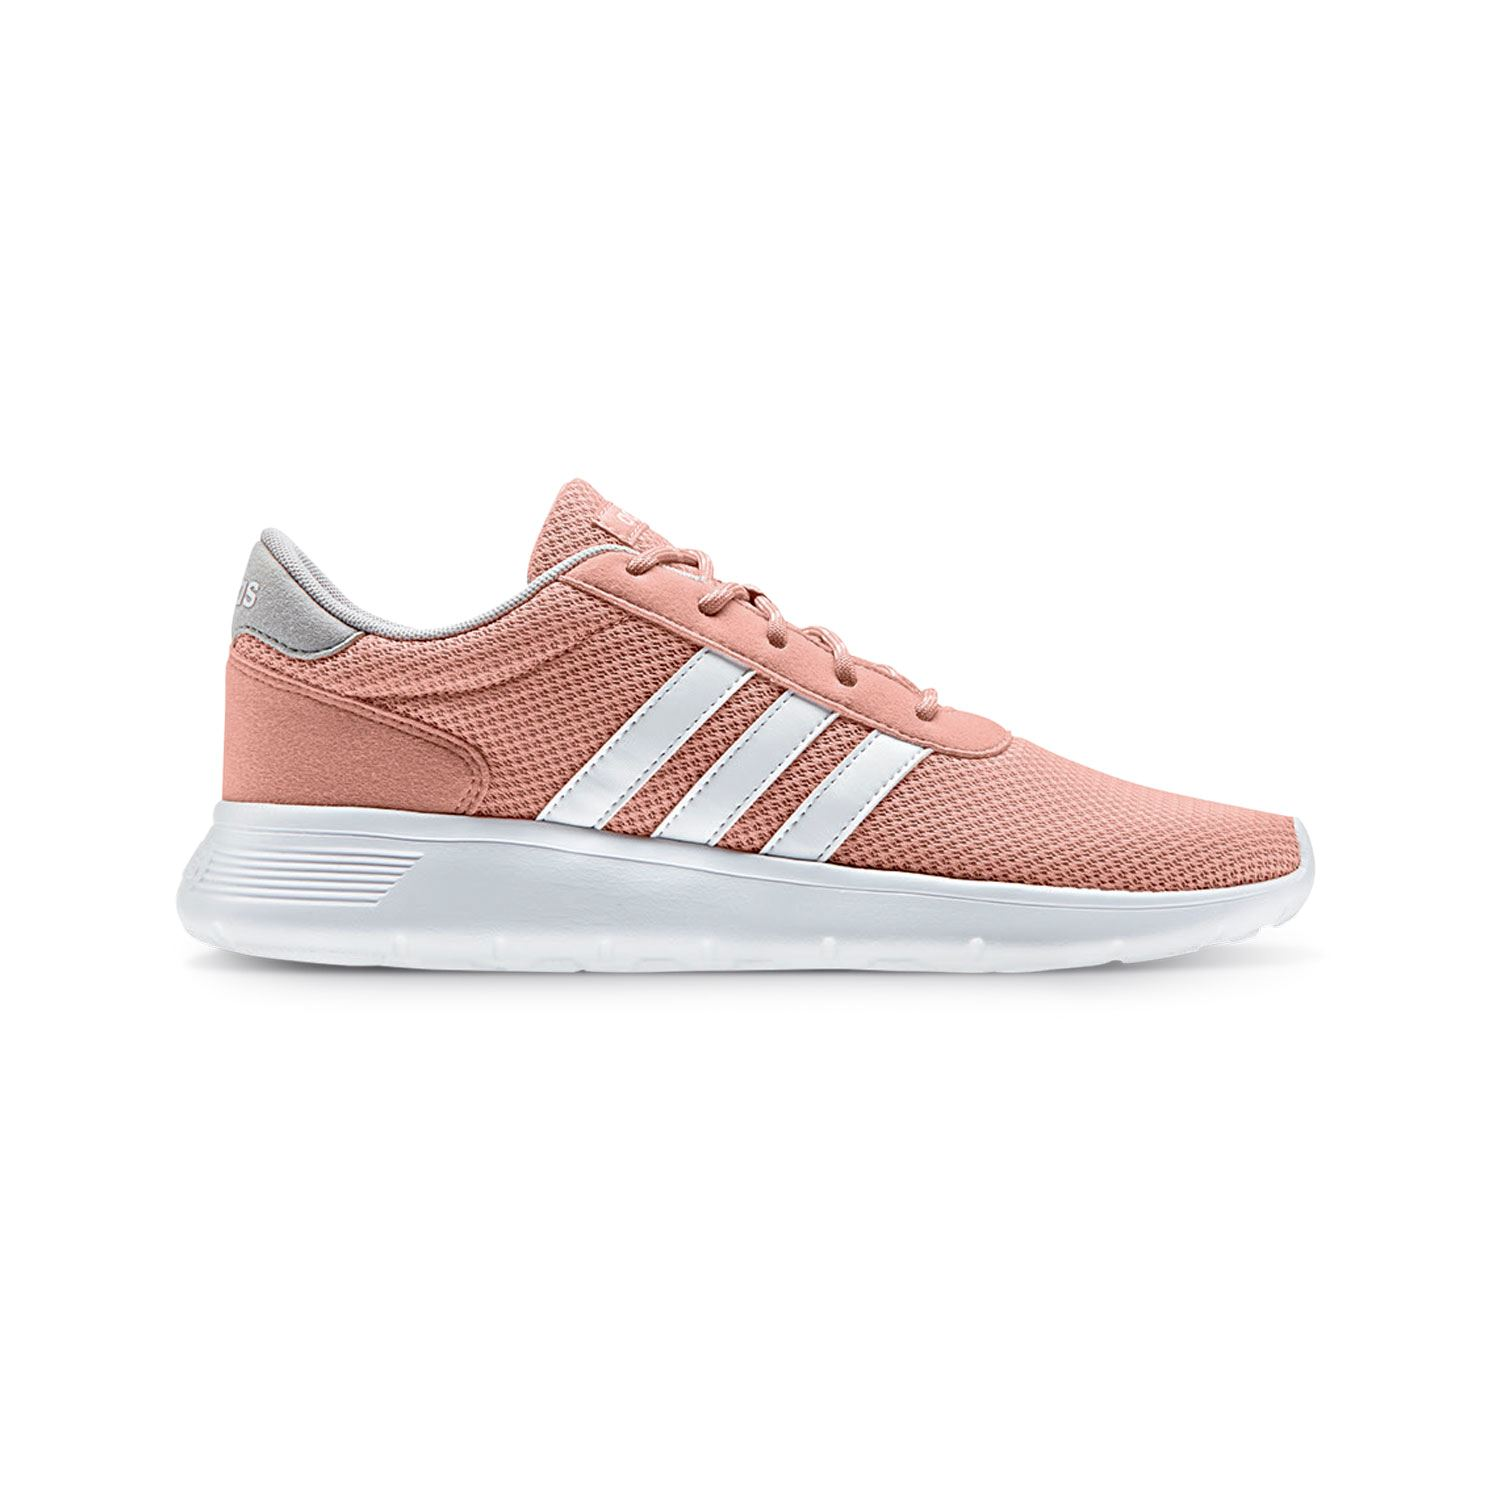 best loved 0a282 bfe43 Adidas Lite Racer W Bb9837, Zapatillas para Mujer